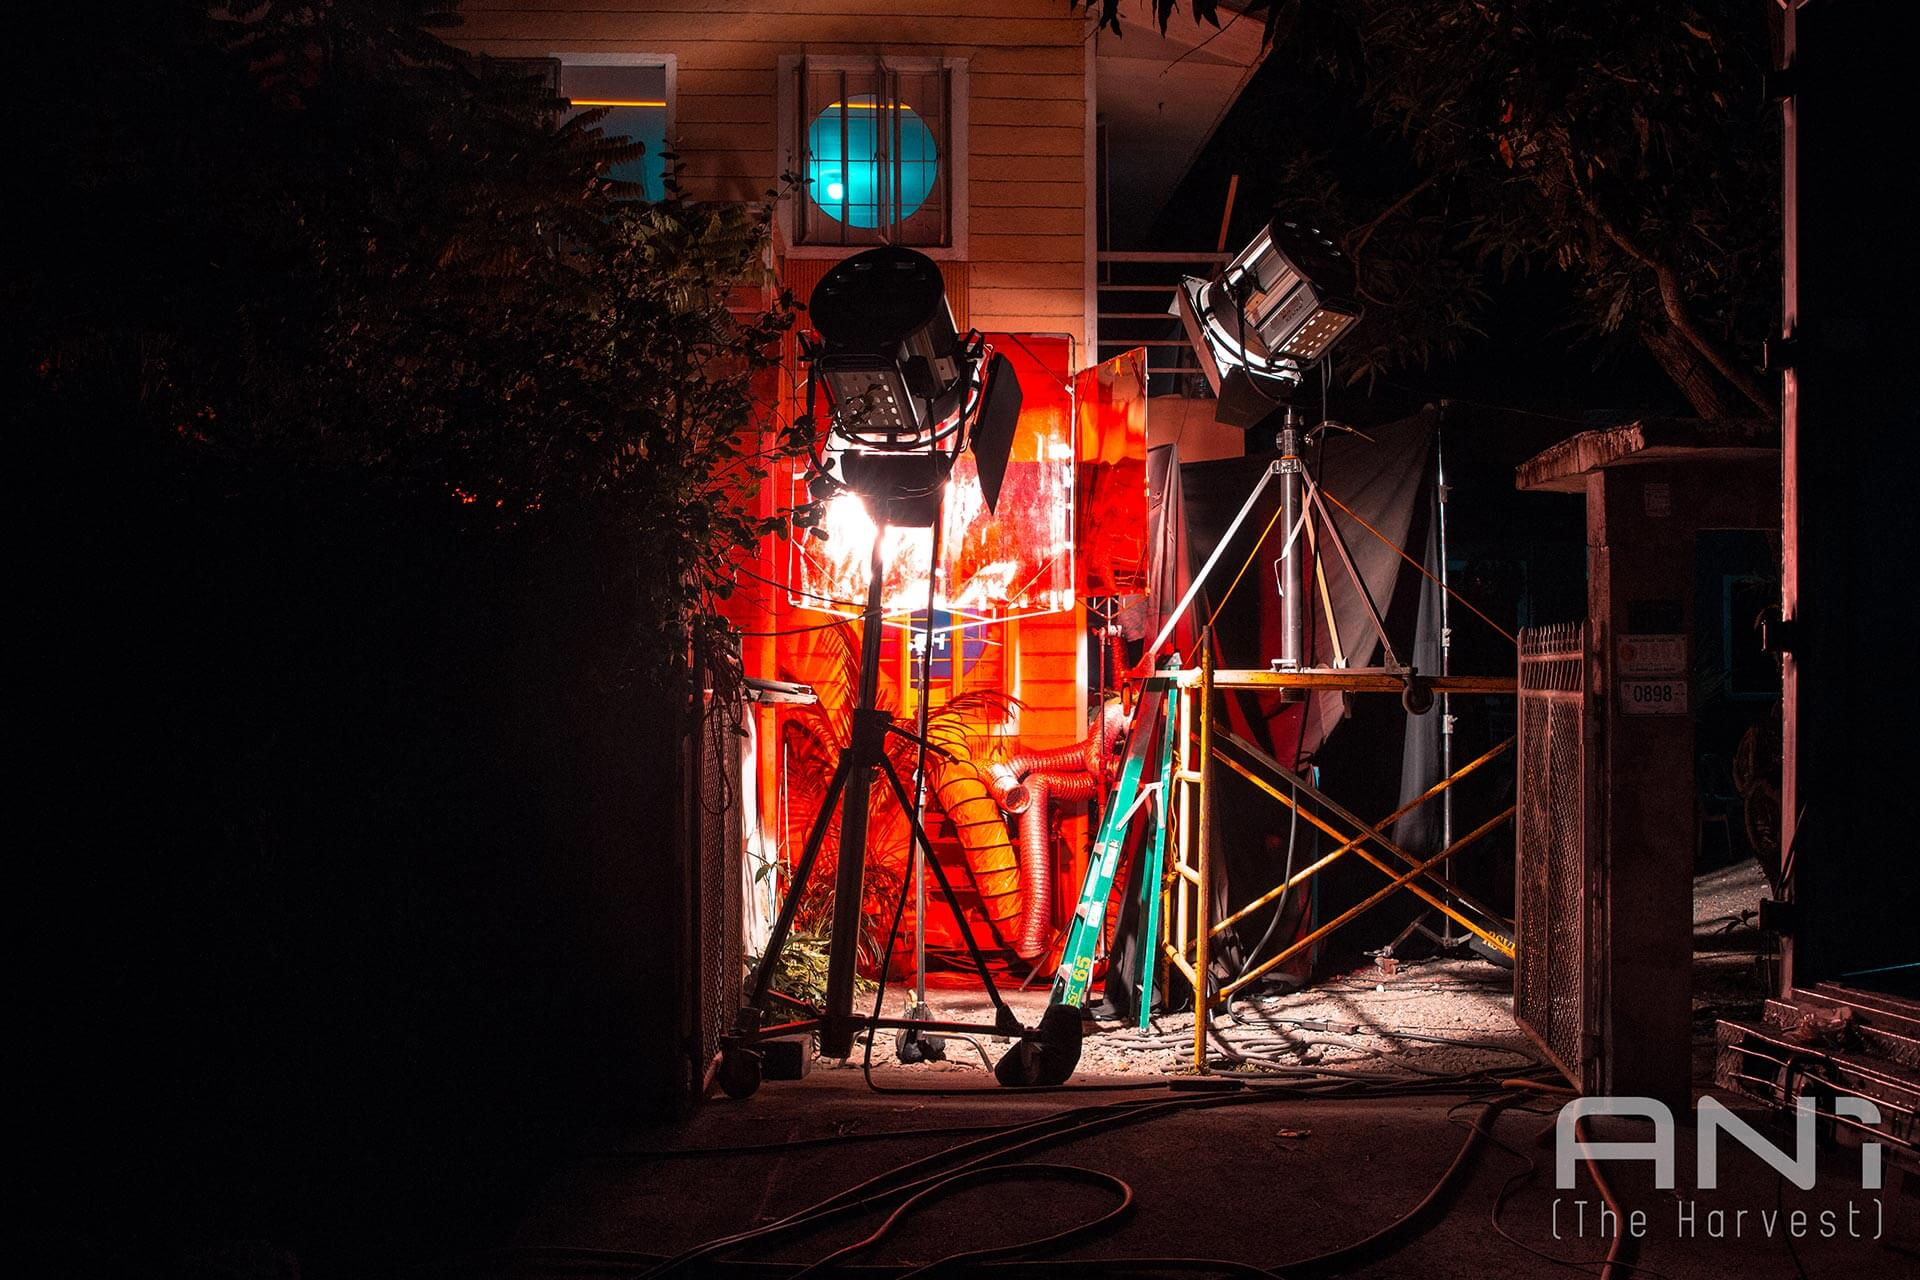 The house exterior on the set of ANI (2019).